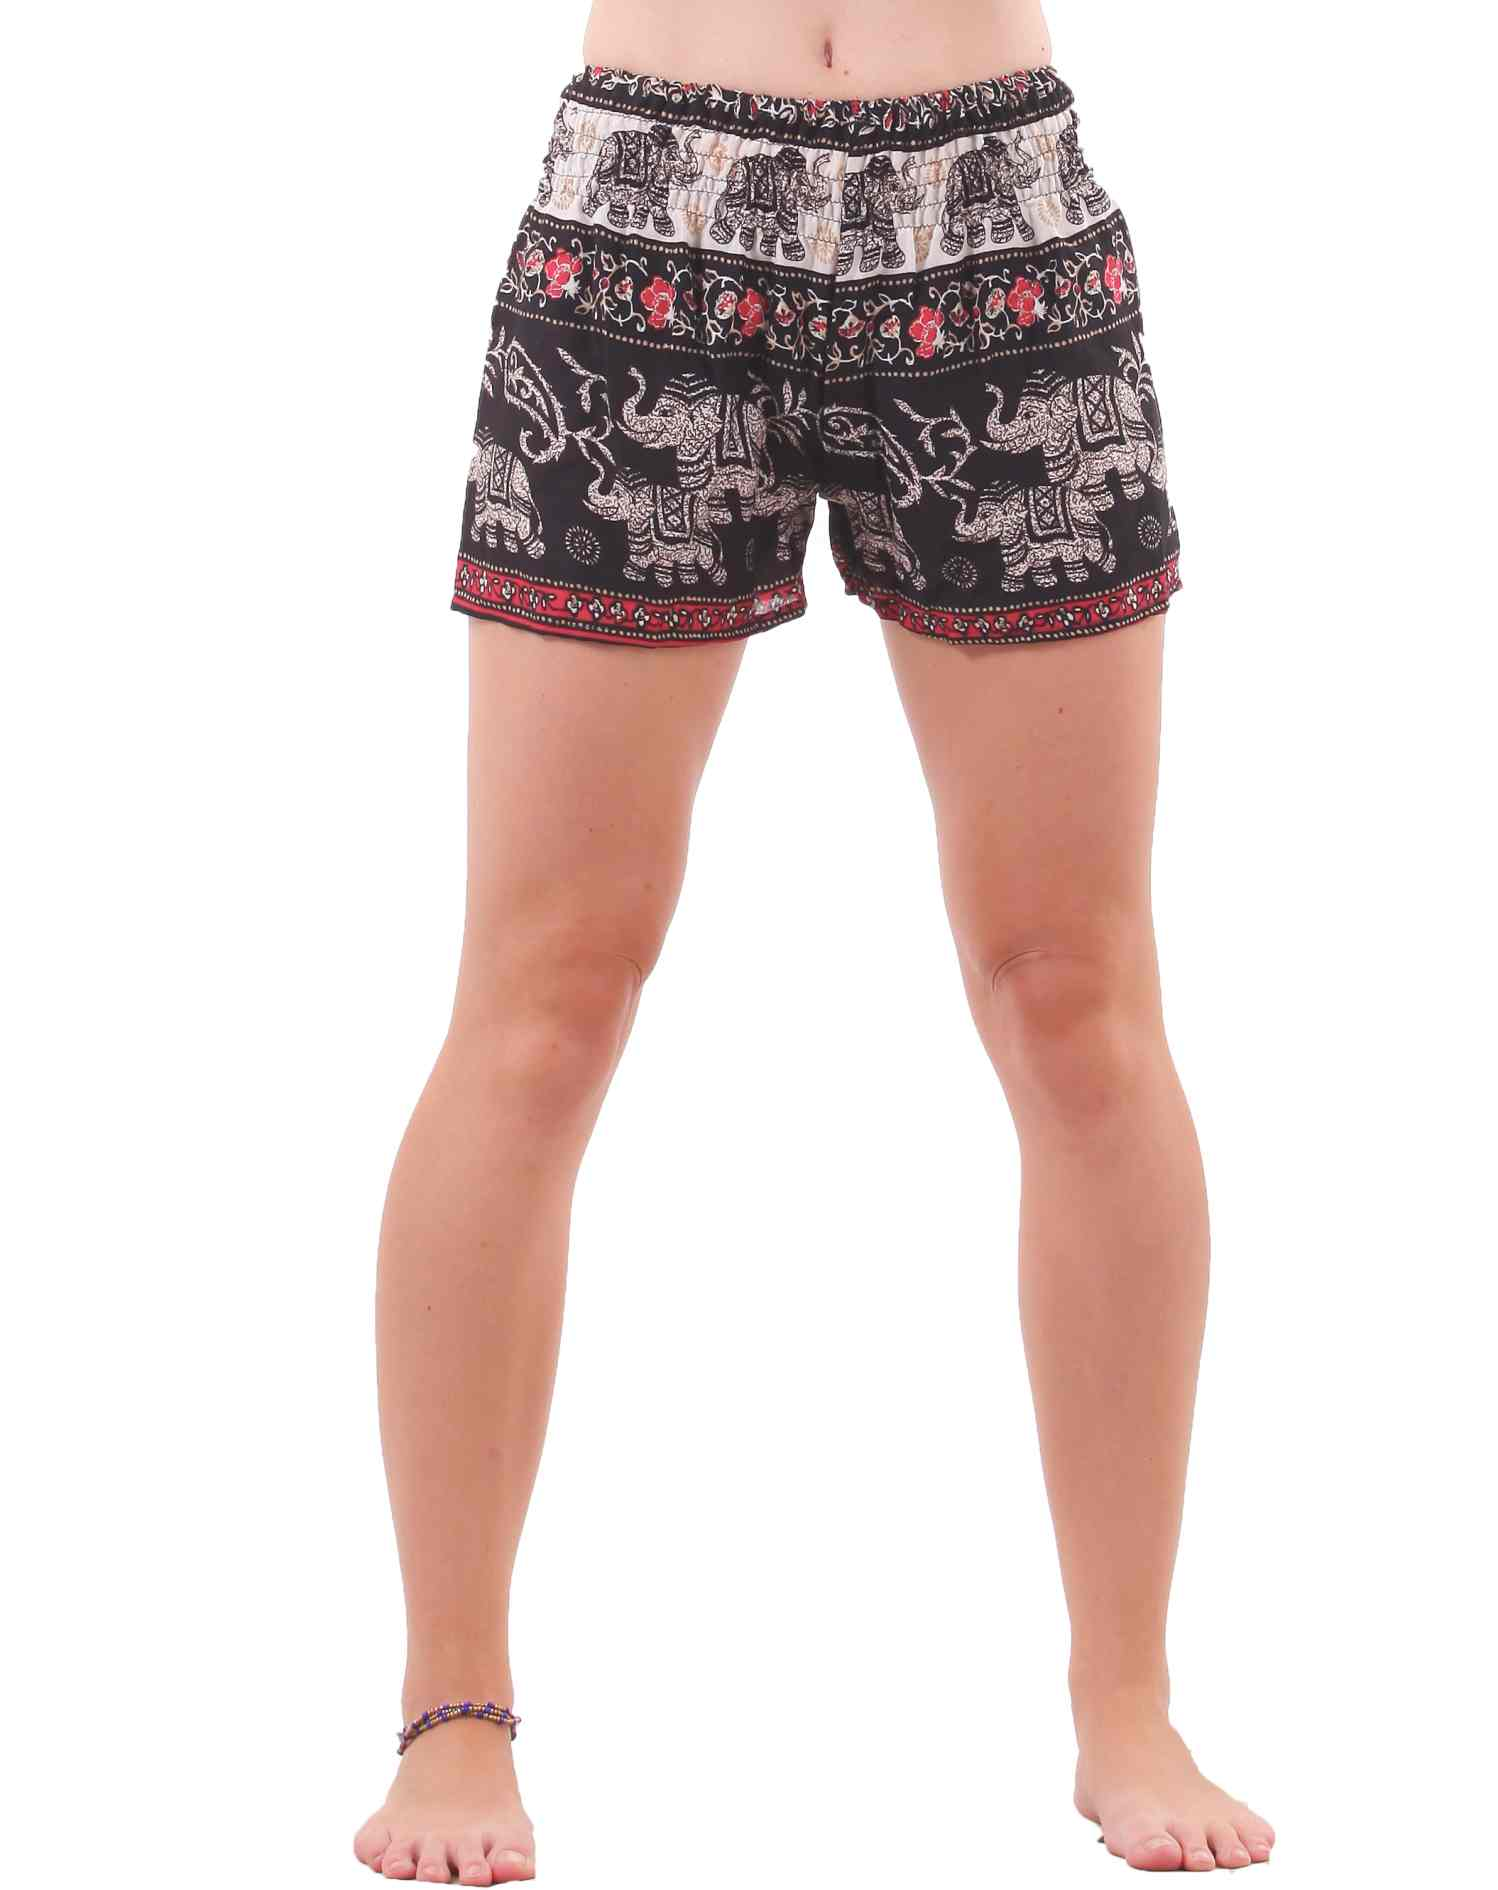 Cute, chic, boho, comfy, sexy, comfy, comfy, comfy and even more comfy! You're gonna fall right in love with our shorts! Like the harem pants, these babies have a comfy elastic waist (except the 3 pairs with drawstring option) and are super lightweight and easy to wear.